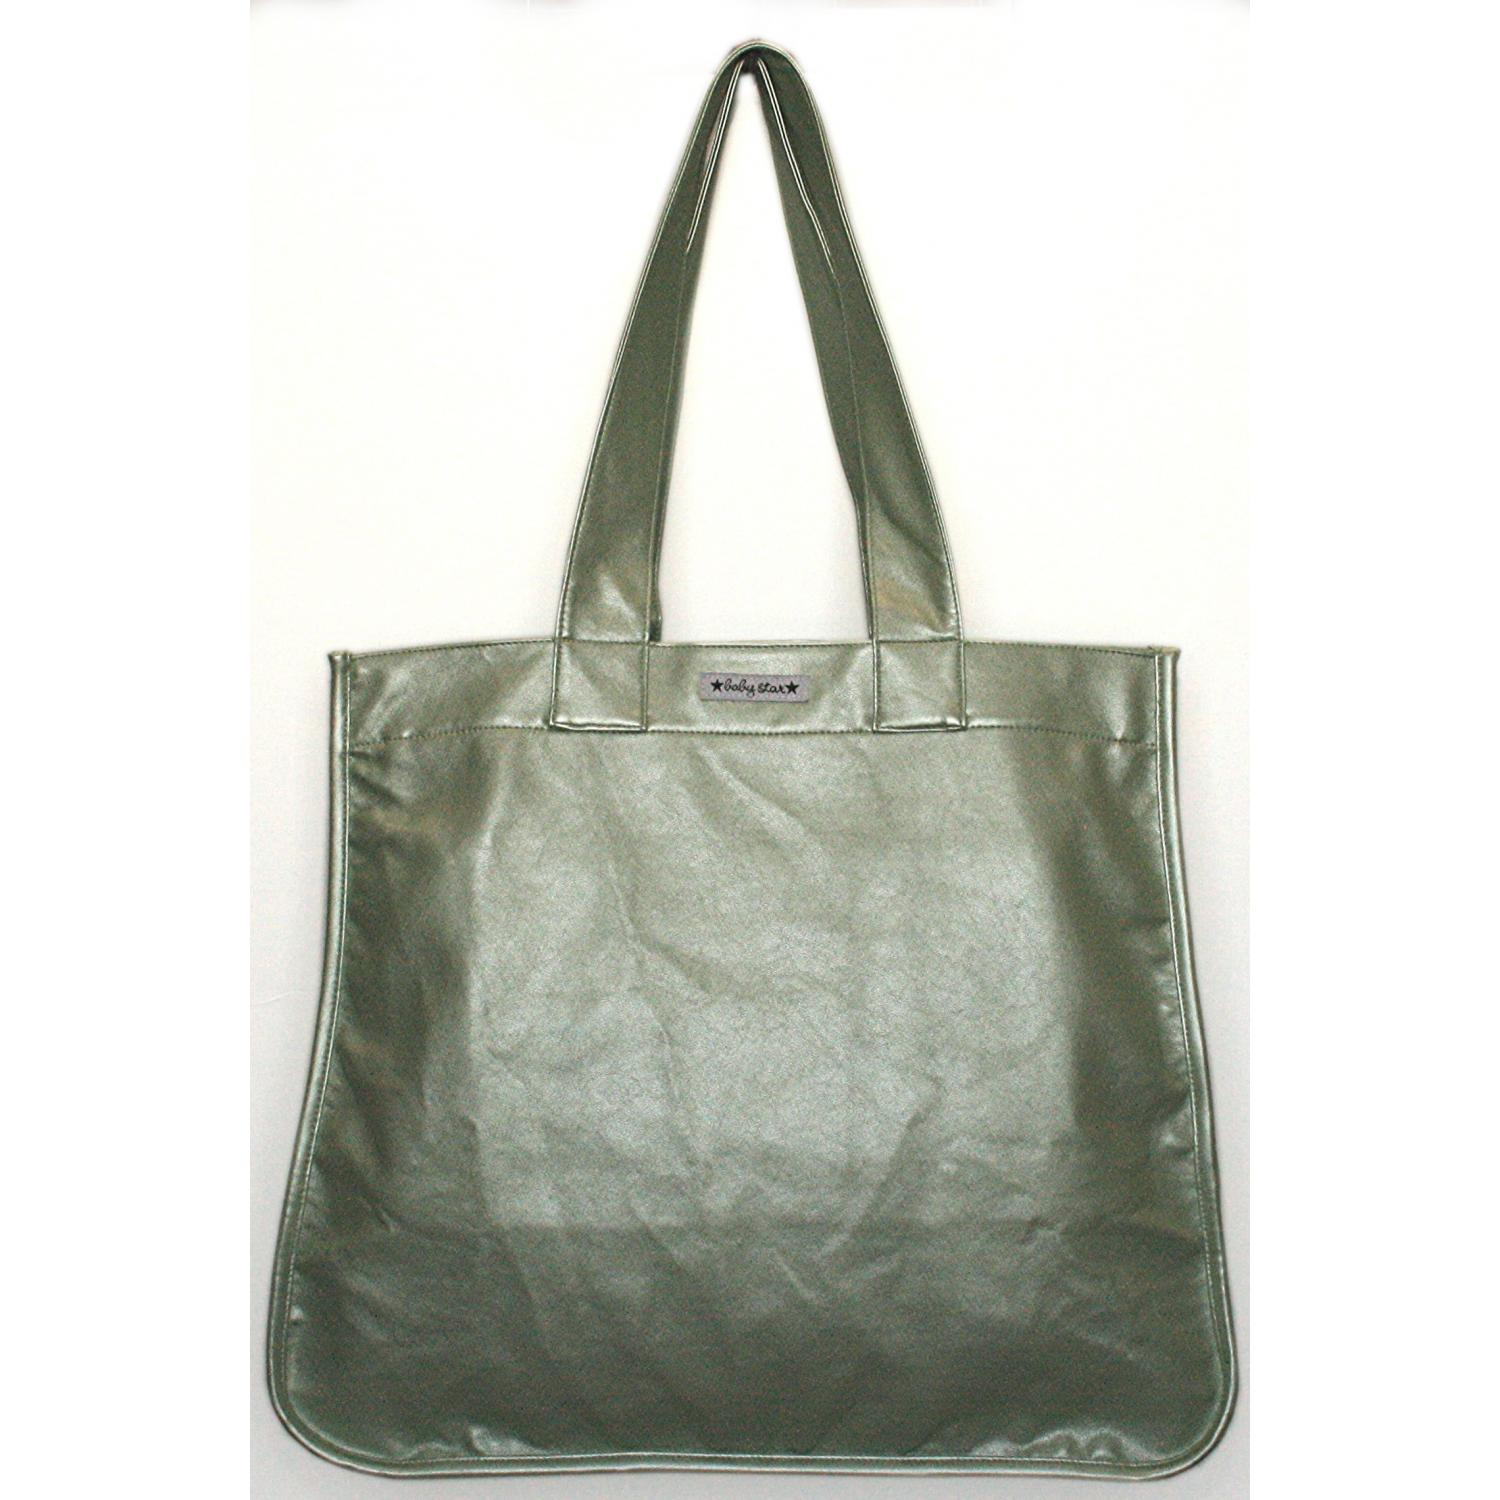 Baby Star Rock The Tote Metallic Diaper Bag - Green.